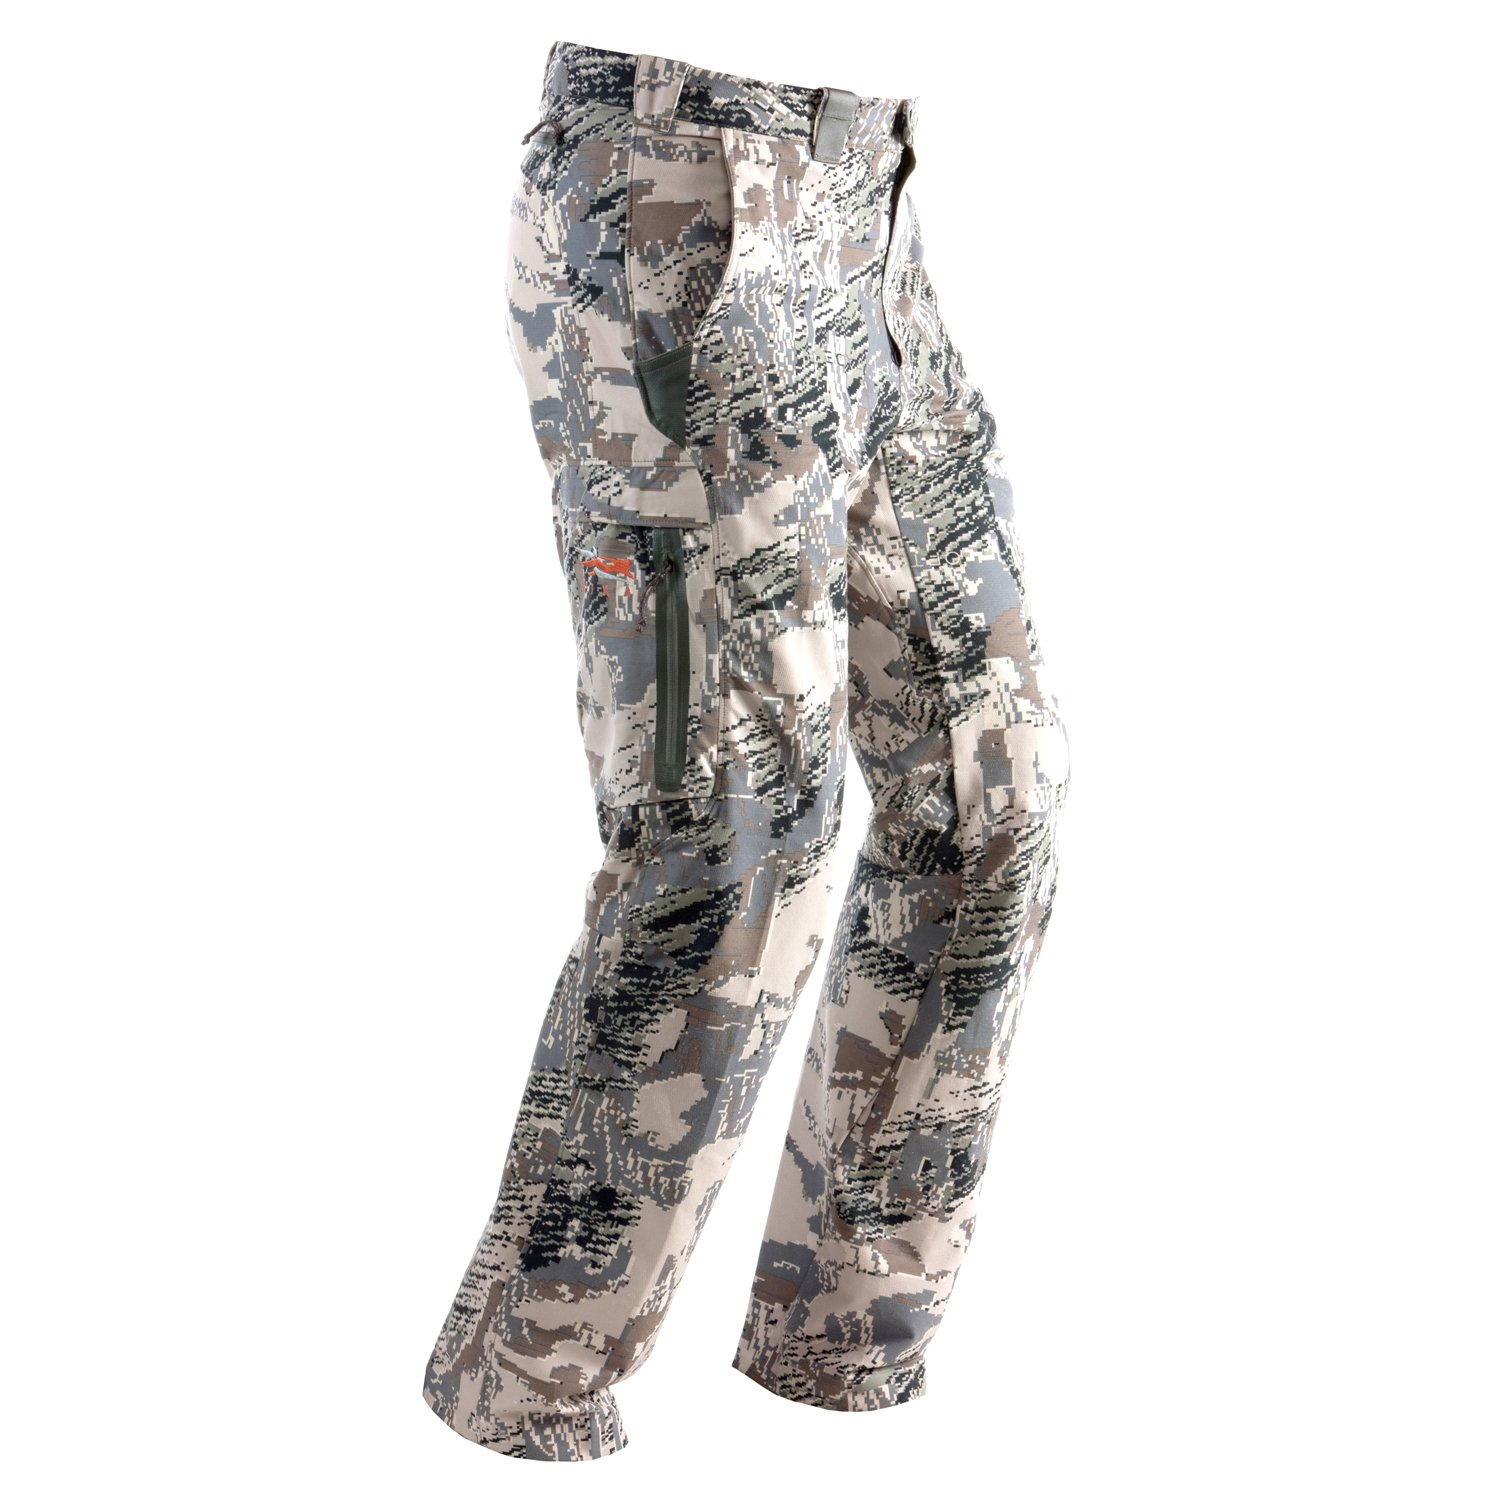 SITKA Gear Ascent Pant Optifade Open Country 30R